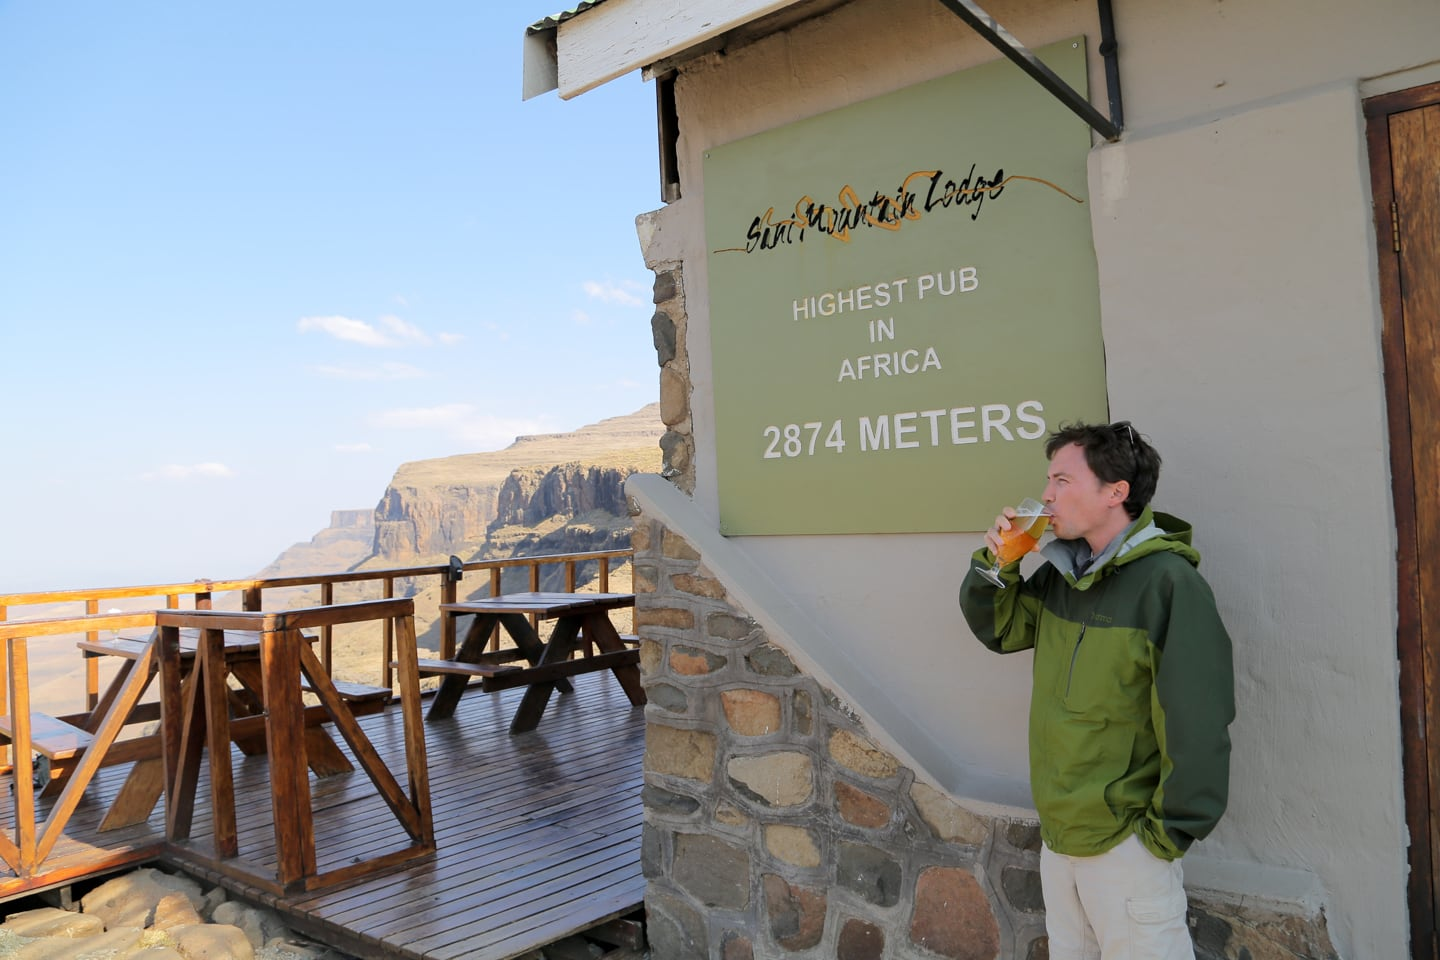 Sani Mountain Lodge highest pub in Africa